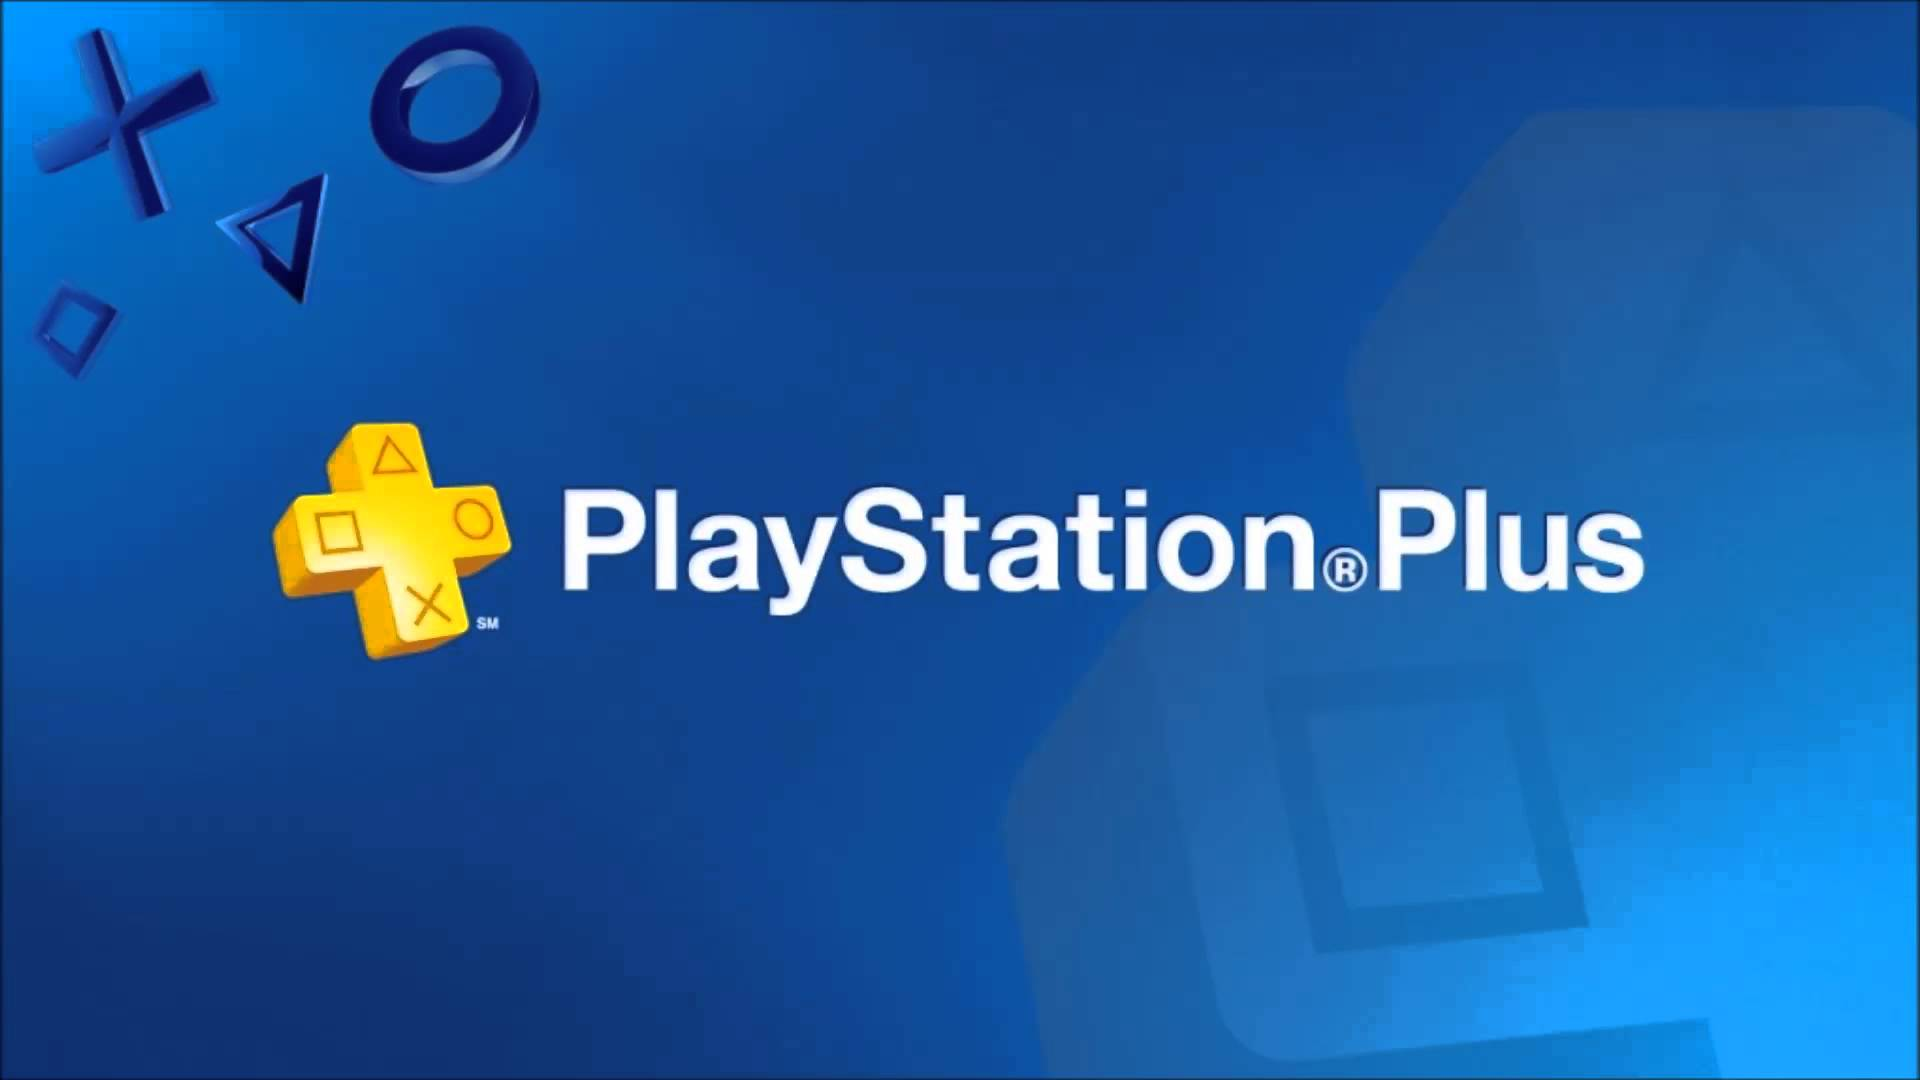 Report: PlayStation Plus Free Games March 2021 to Include Final Fantasy 7 Remake, Remnant From the Ashes & More